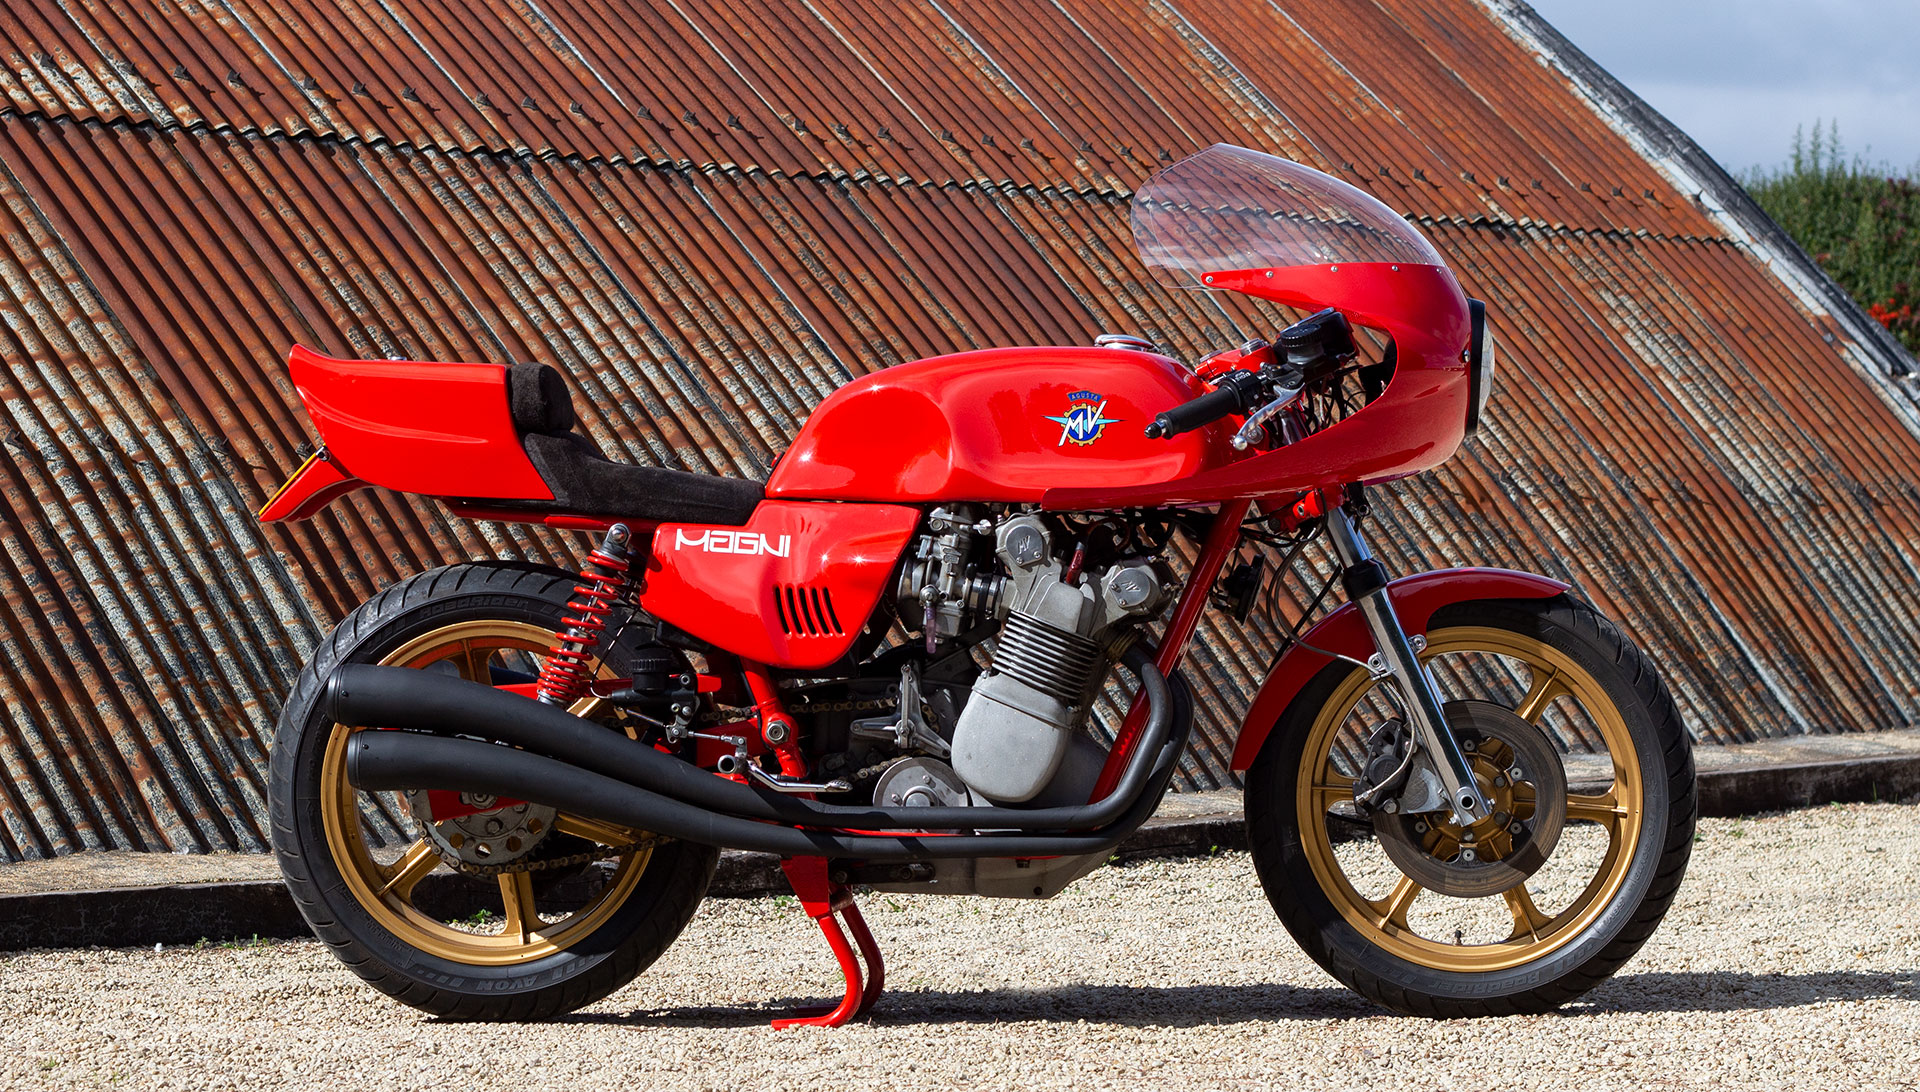 1978 MV Agusta Magni 861 for sale at The Classic Motor Hub